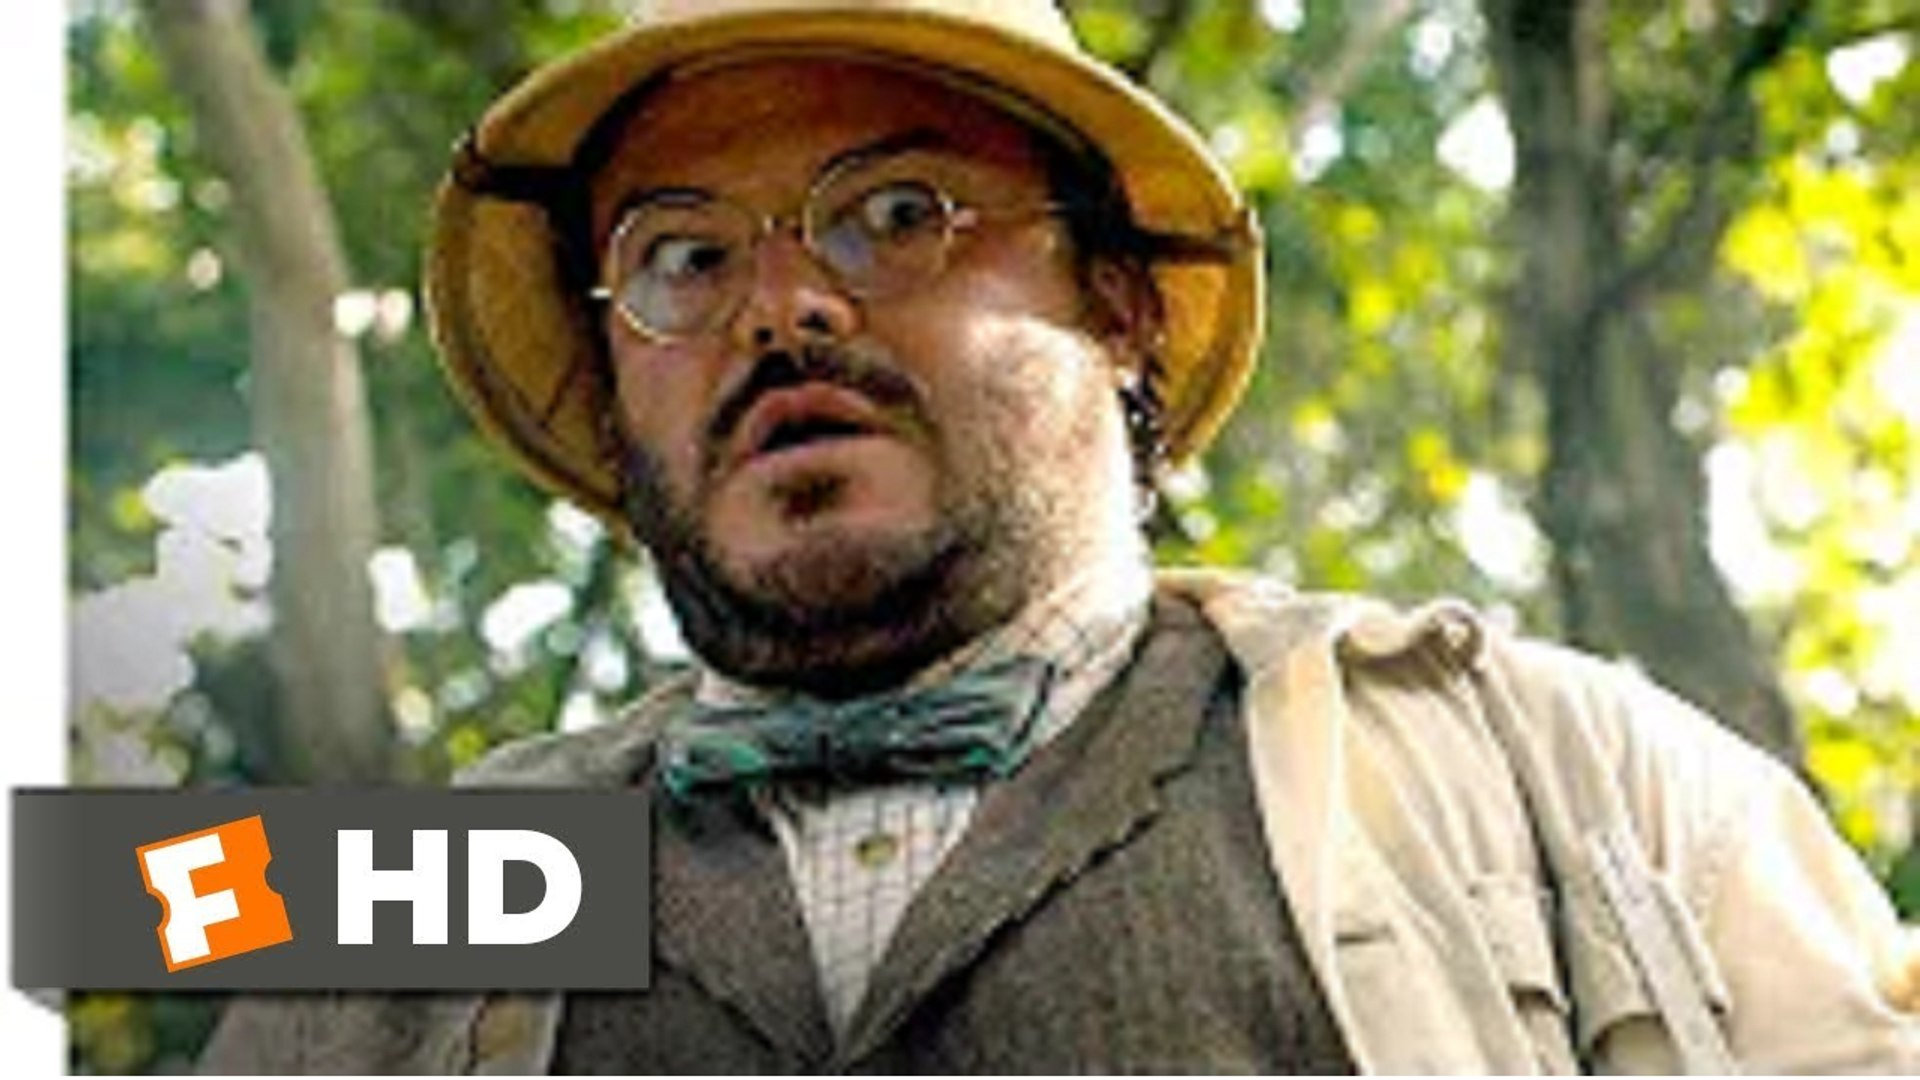 Jumanji 2 - Welcome to the Jungle (2017) - Learning to Pee Scene (3-10) - Hollywood Movies English f